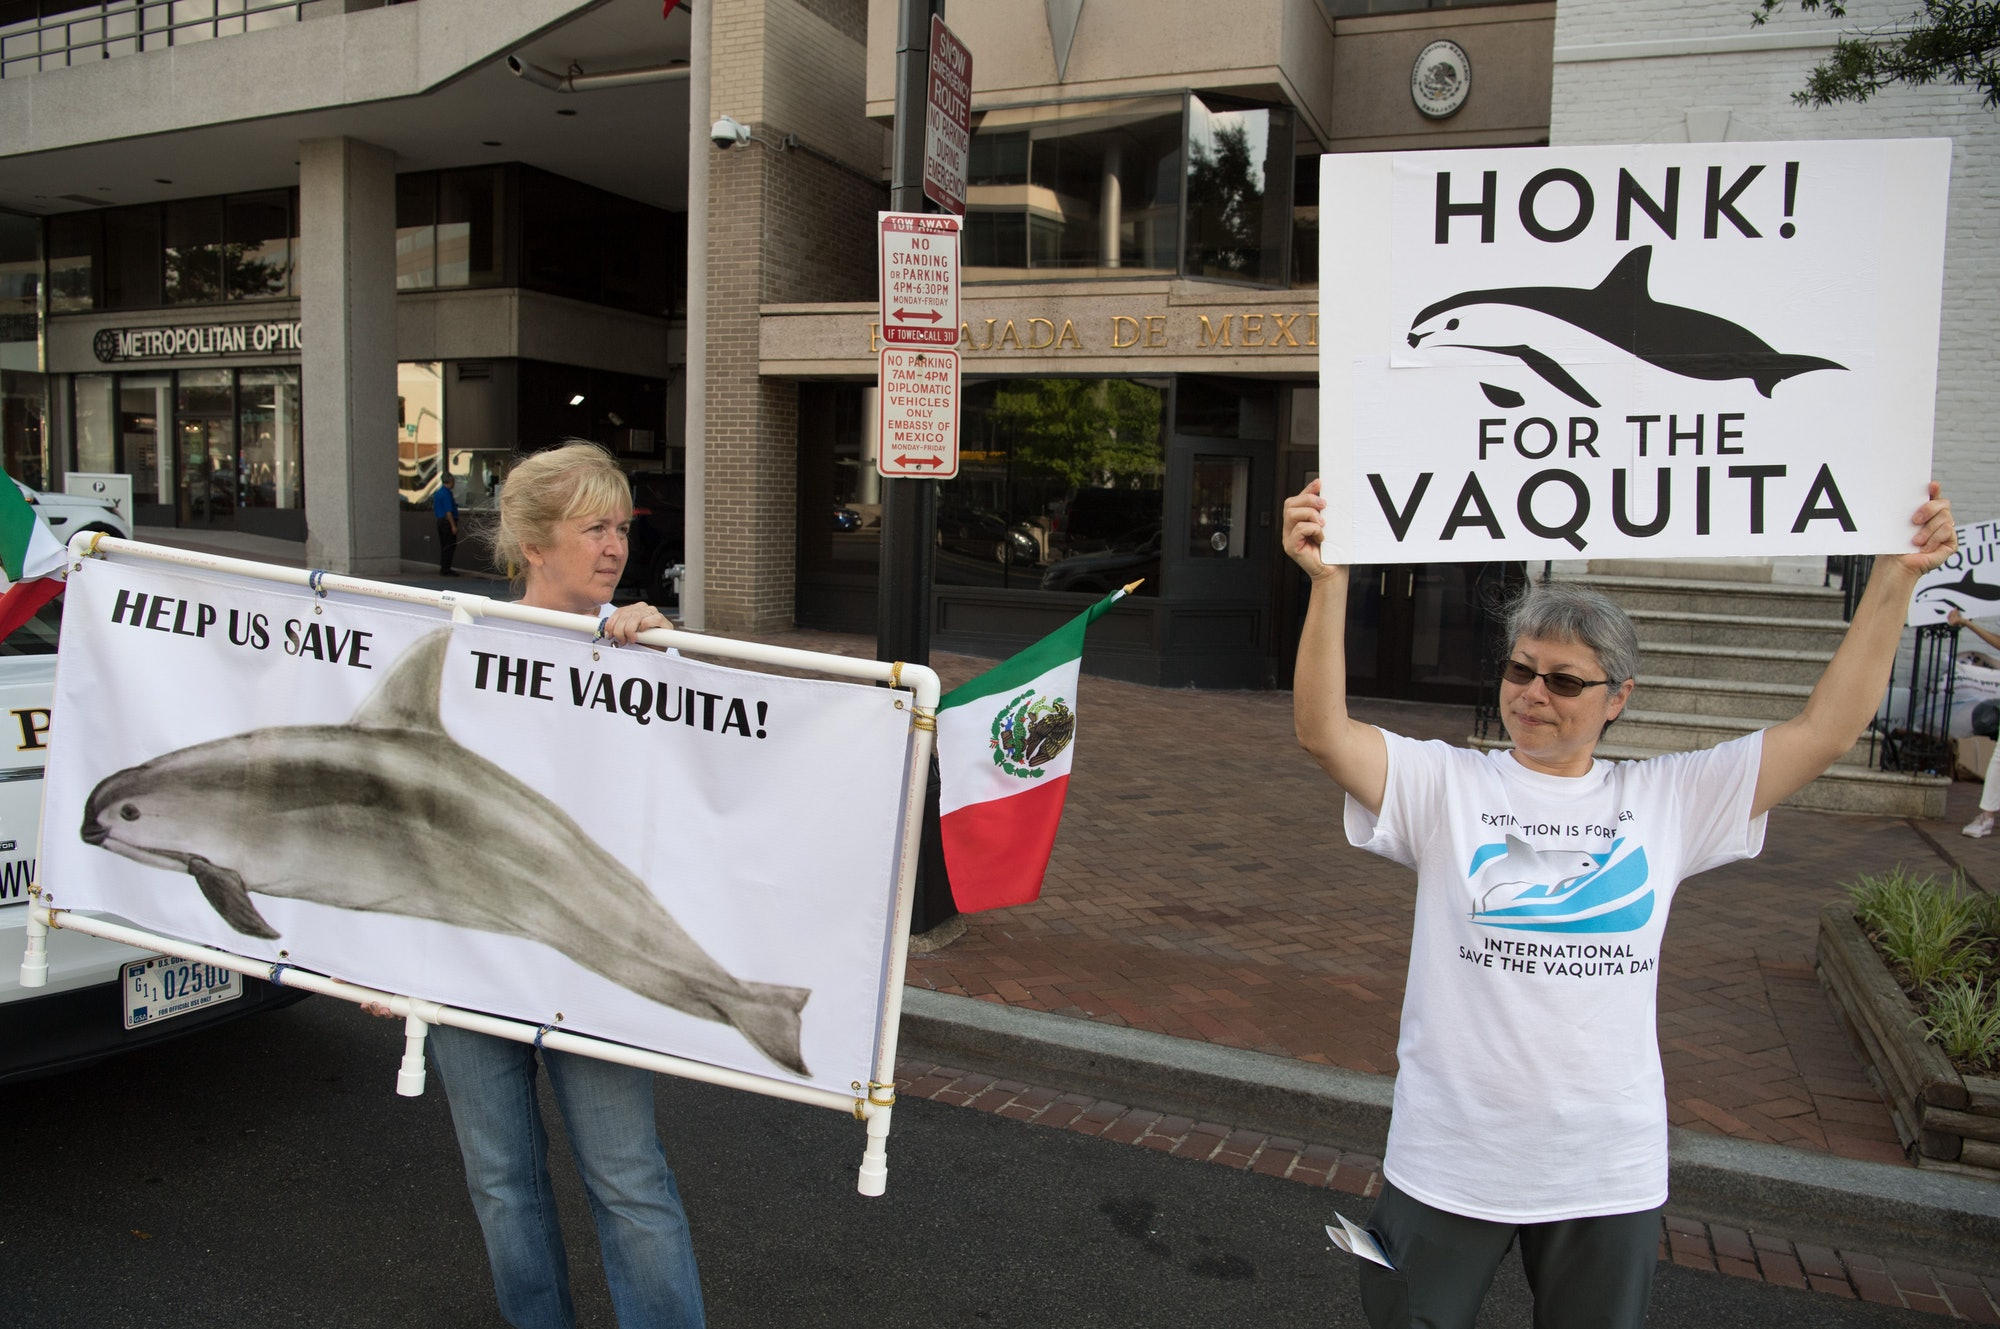 """protestors hold signs saying """"help us save the vaquita"""" and """"honk for the vaquita"""""""